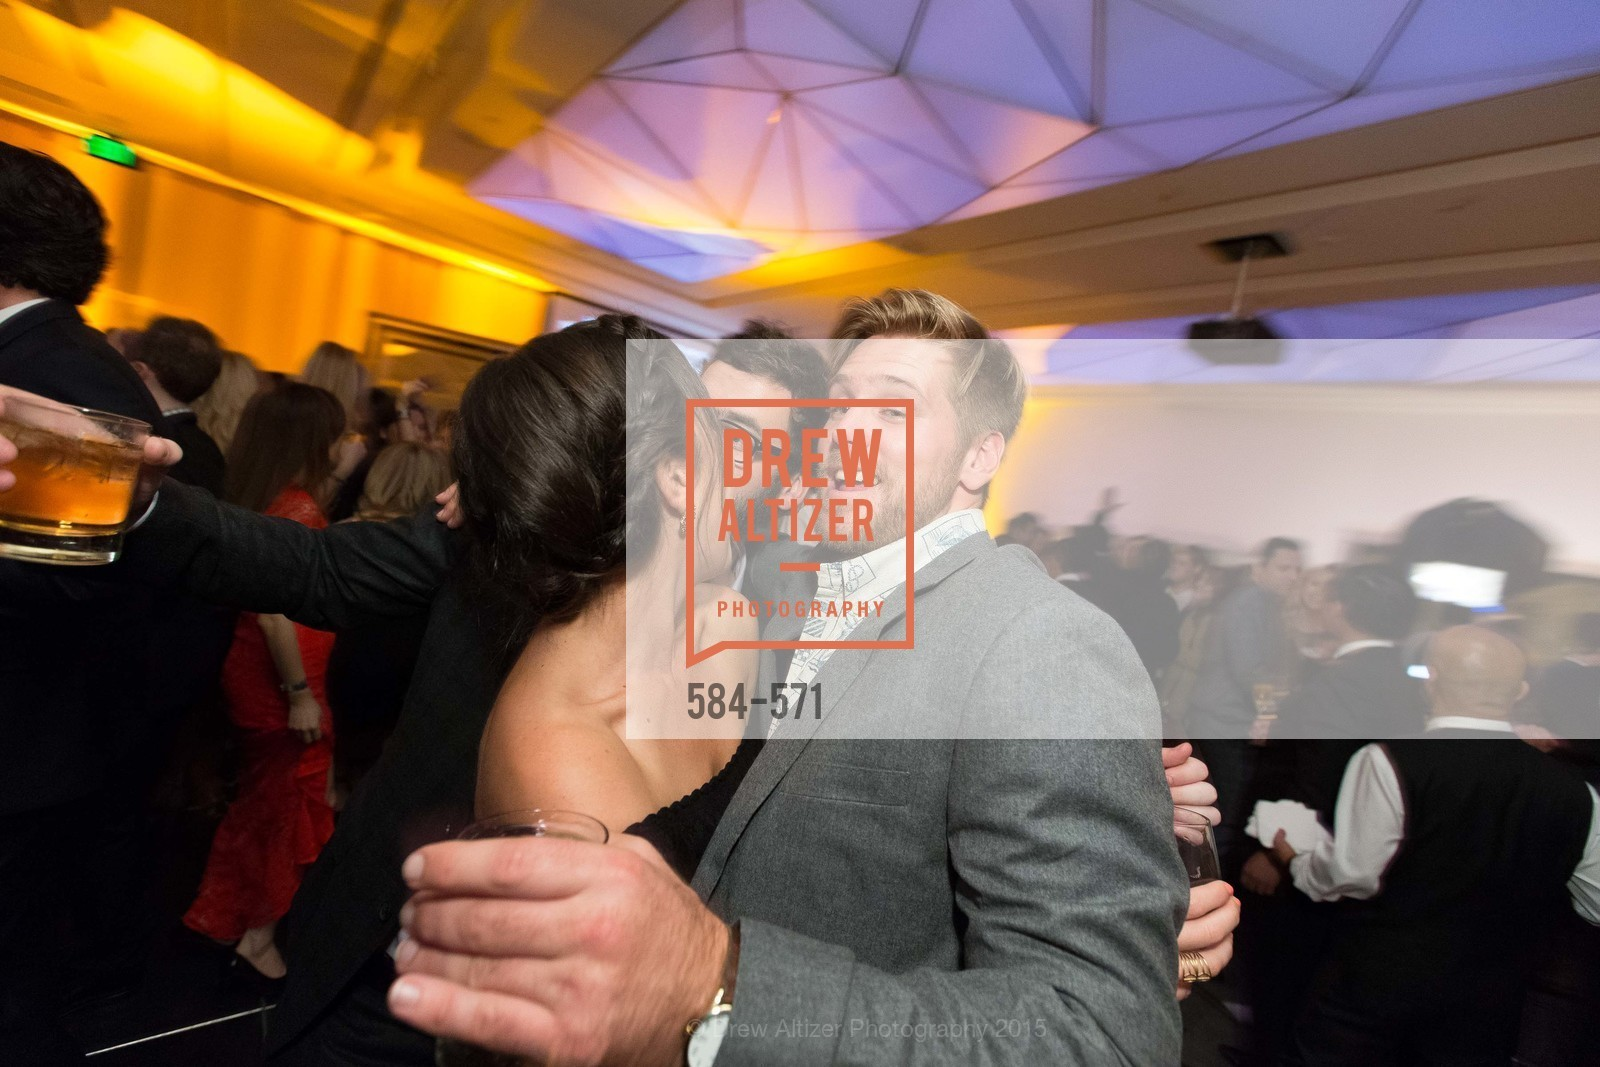 Kyle Withyzombe, Hannah Schmunk, Nick Price, The 10th Annual San Francisco Social, W Hotel. 181 3rd St, November 21st, 2015,Drew Altizer, Drew Altizer Photography, full-service event agency, private events, San Francisco photographer, photographer California